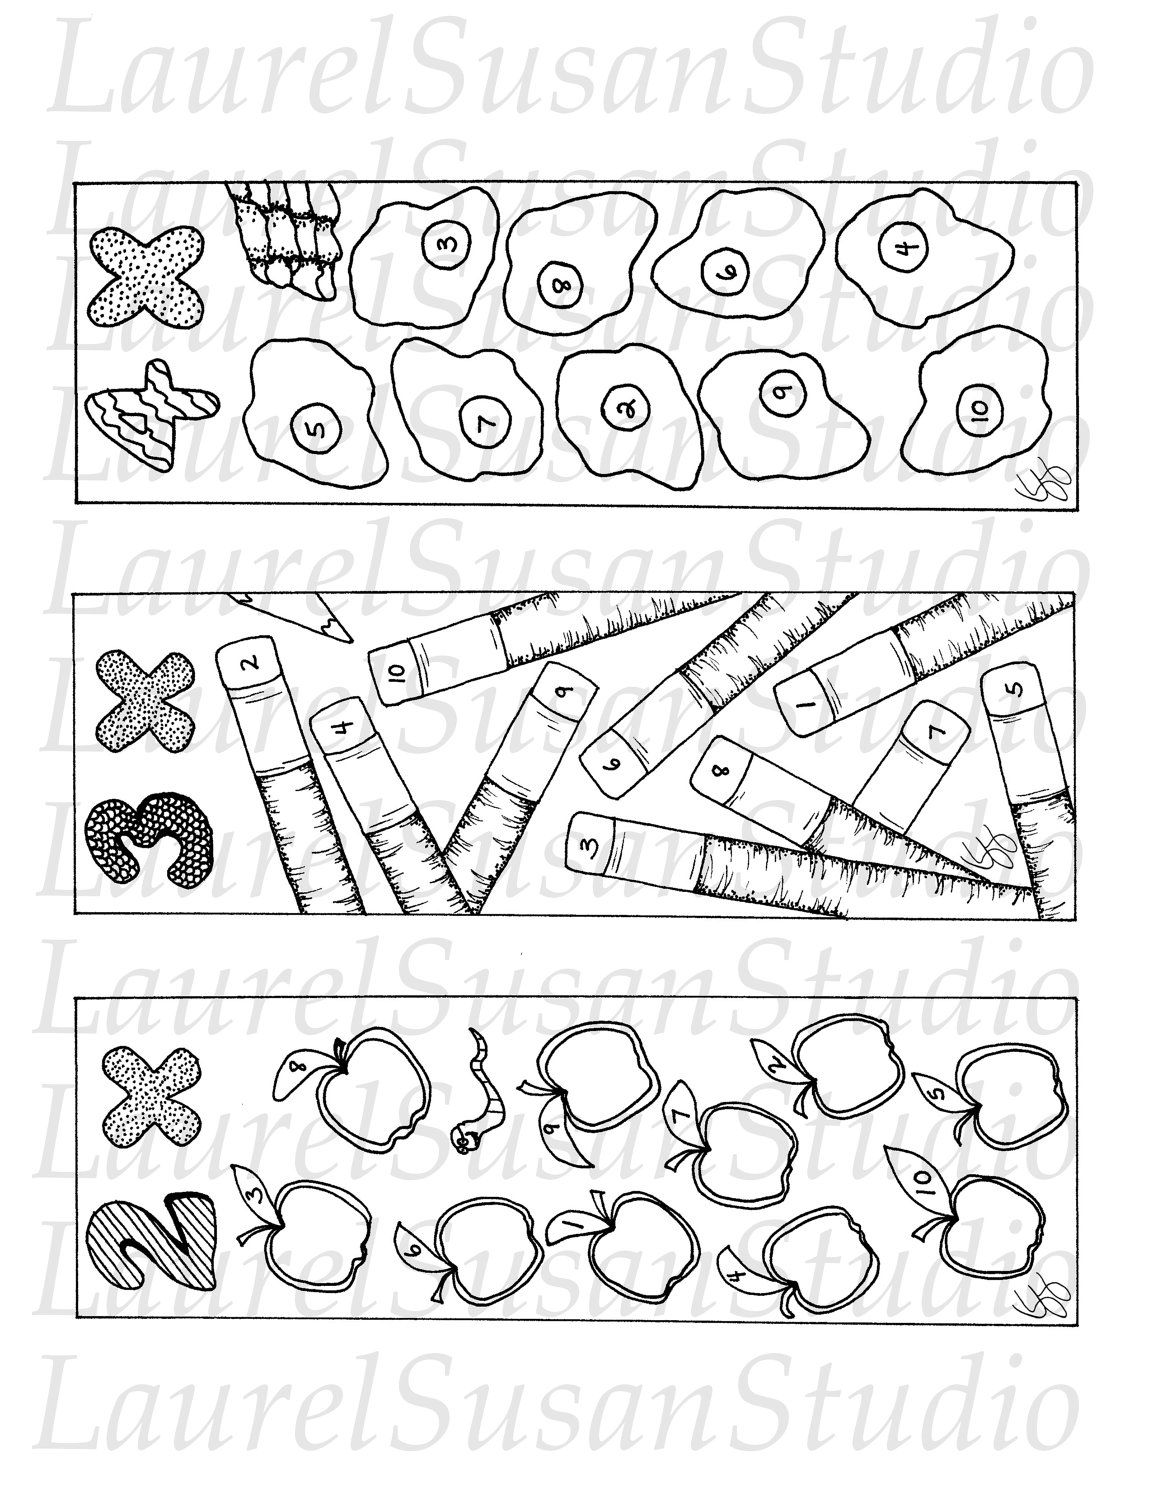 bookmarks to color | Bookmarks+for+kids+to+color | Back-To-School ...